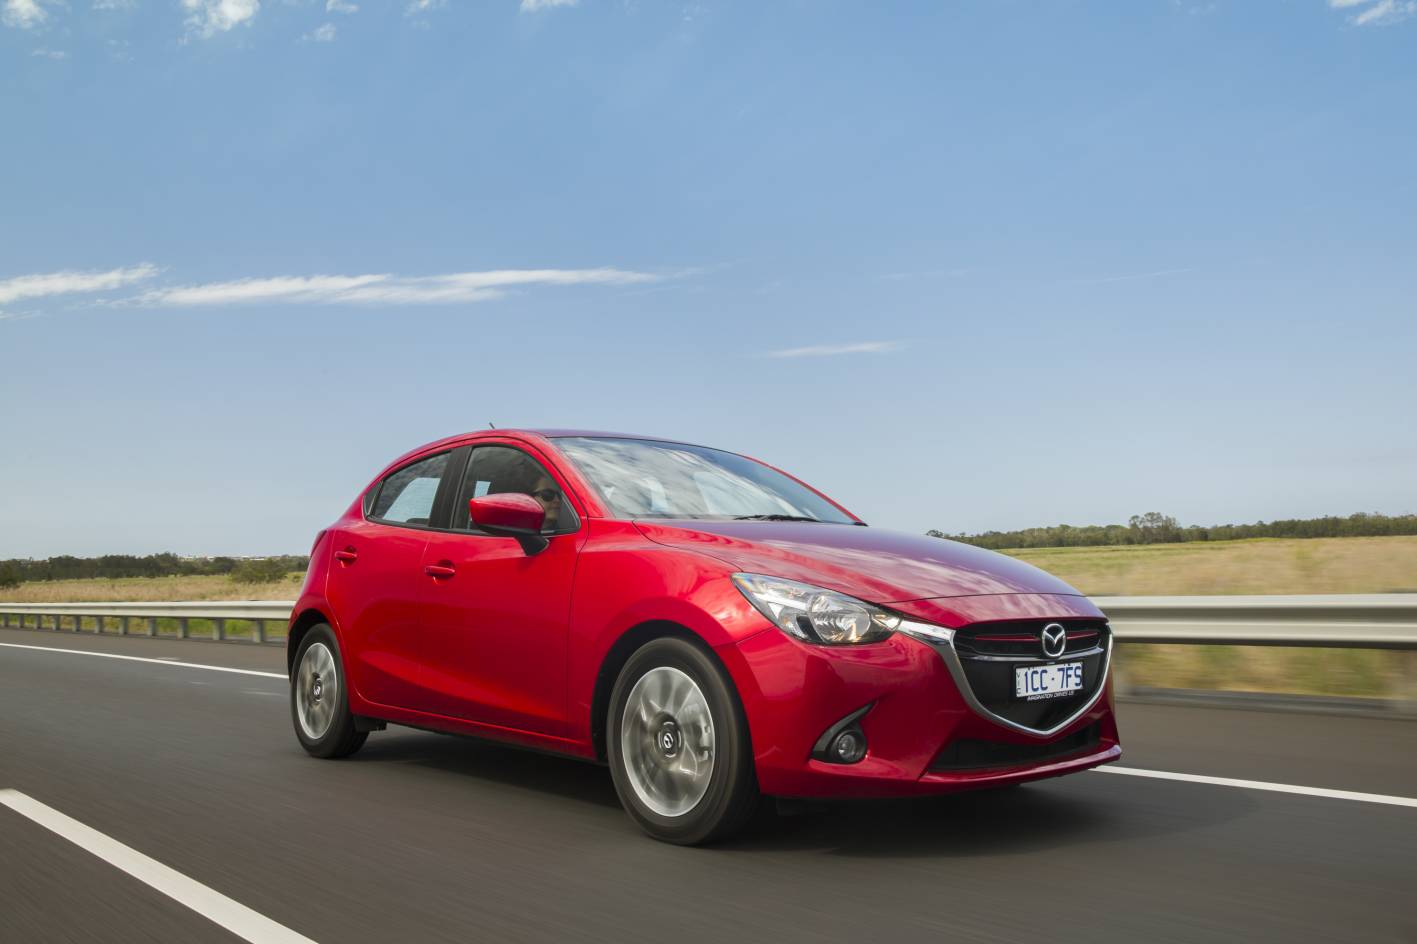 Best Sporty Small Car Under $25,000